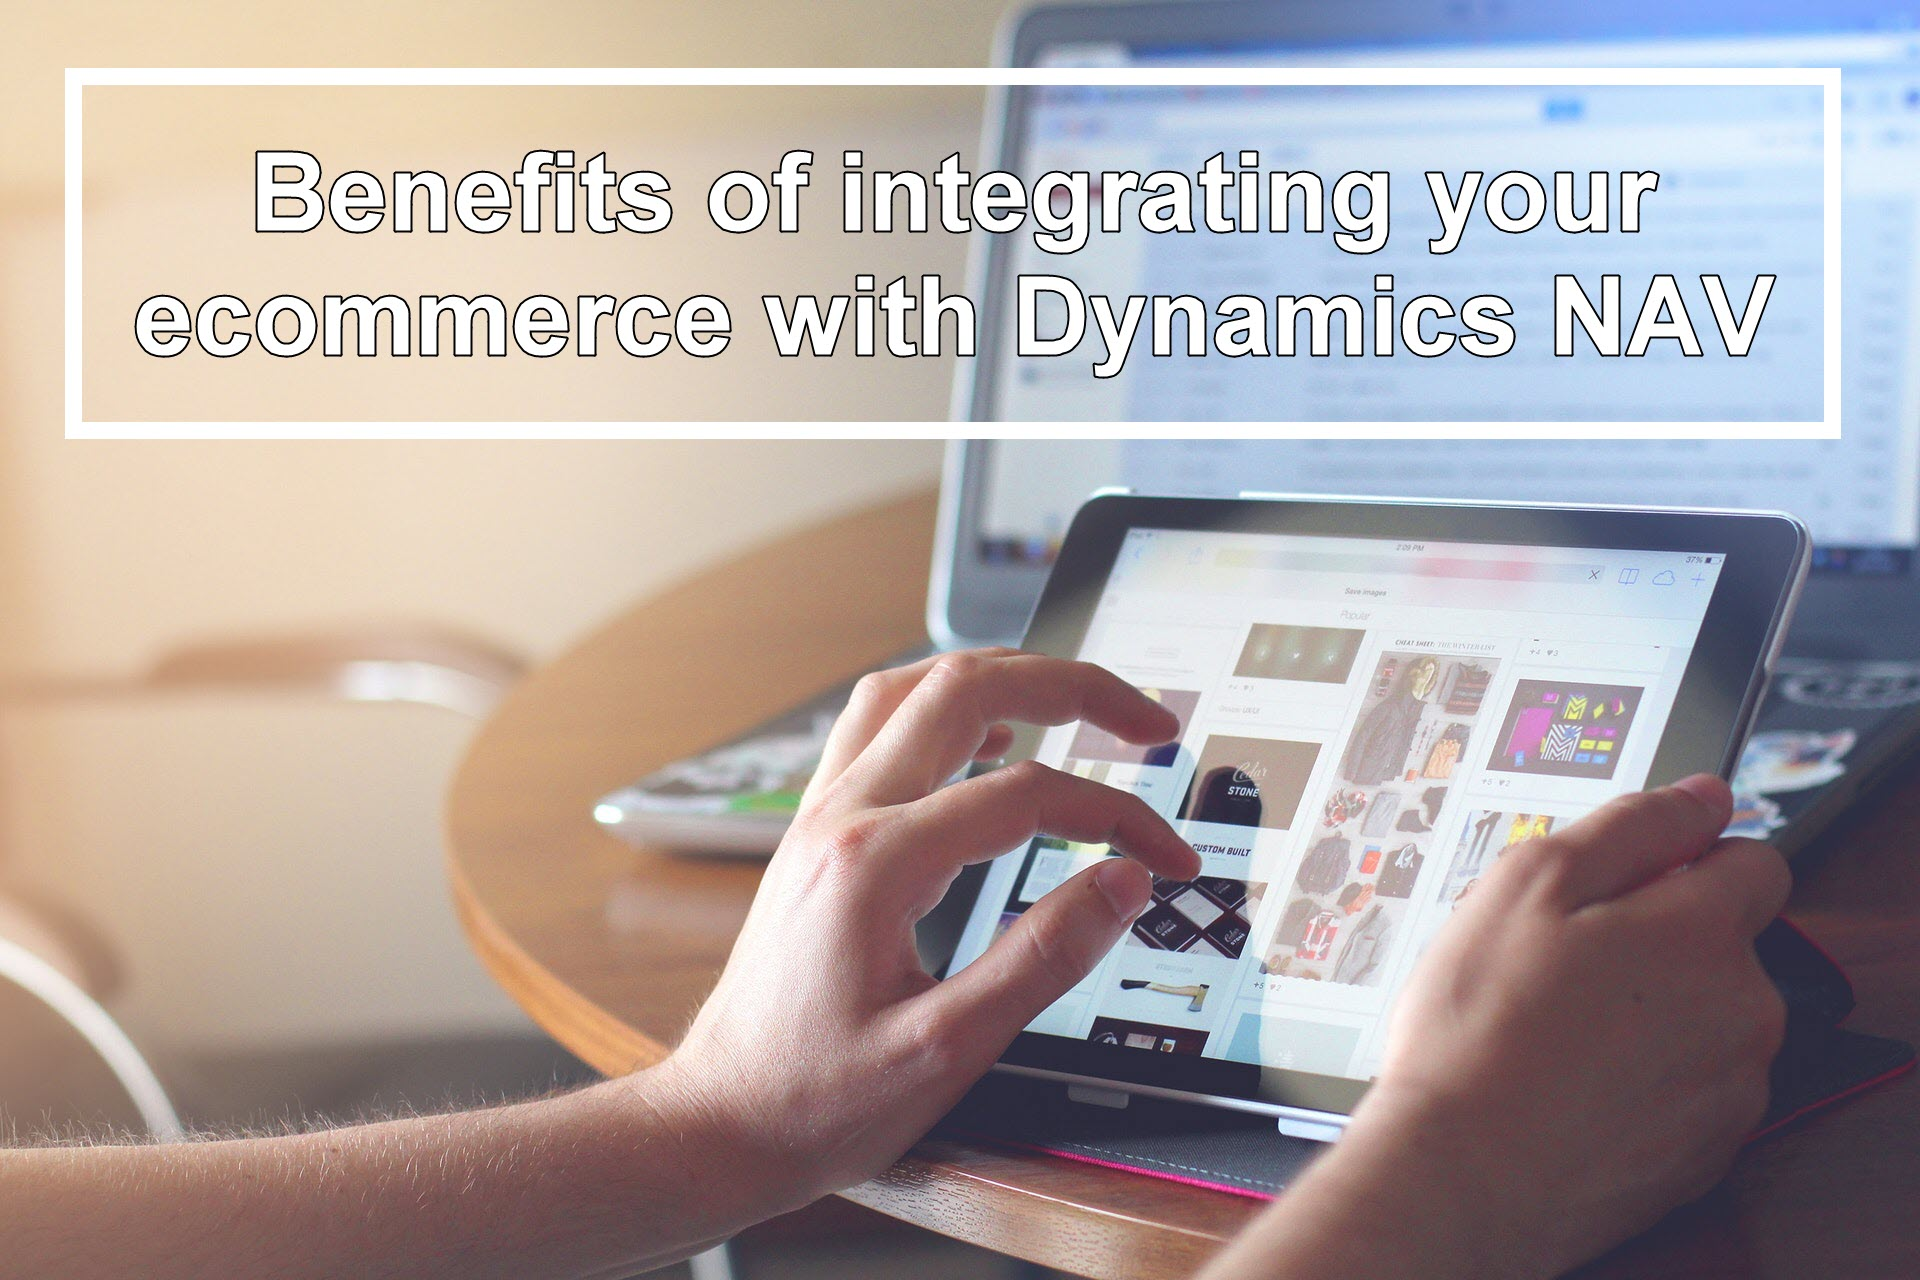 Benefits integrating your ecommerce Dynamics NAV Navision